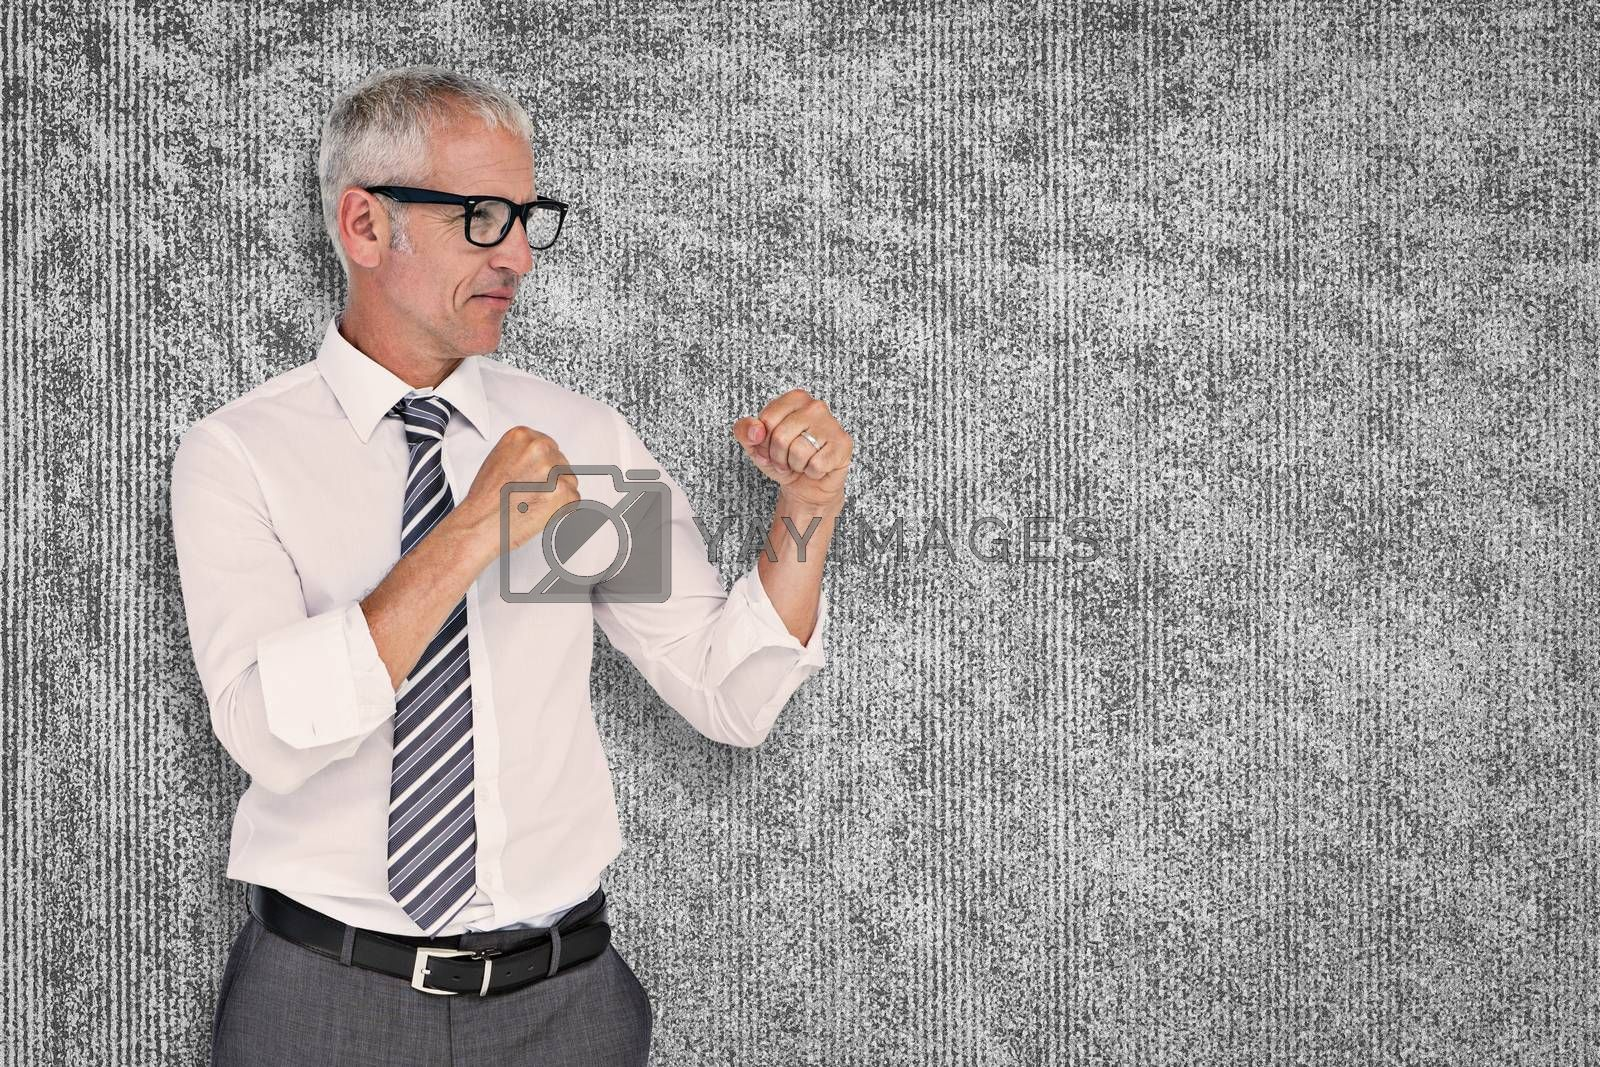 Boxing businessman against grey background